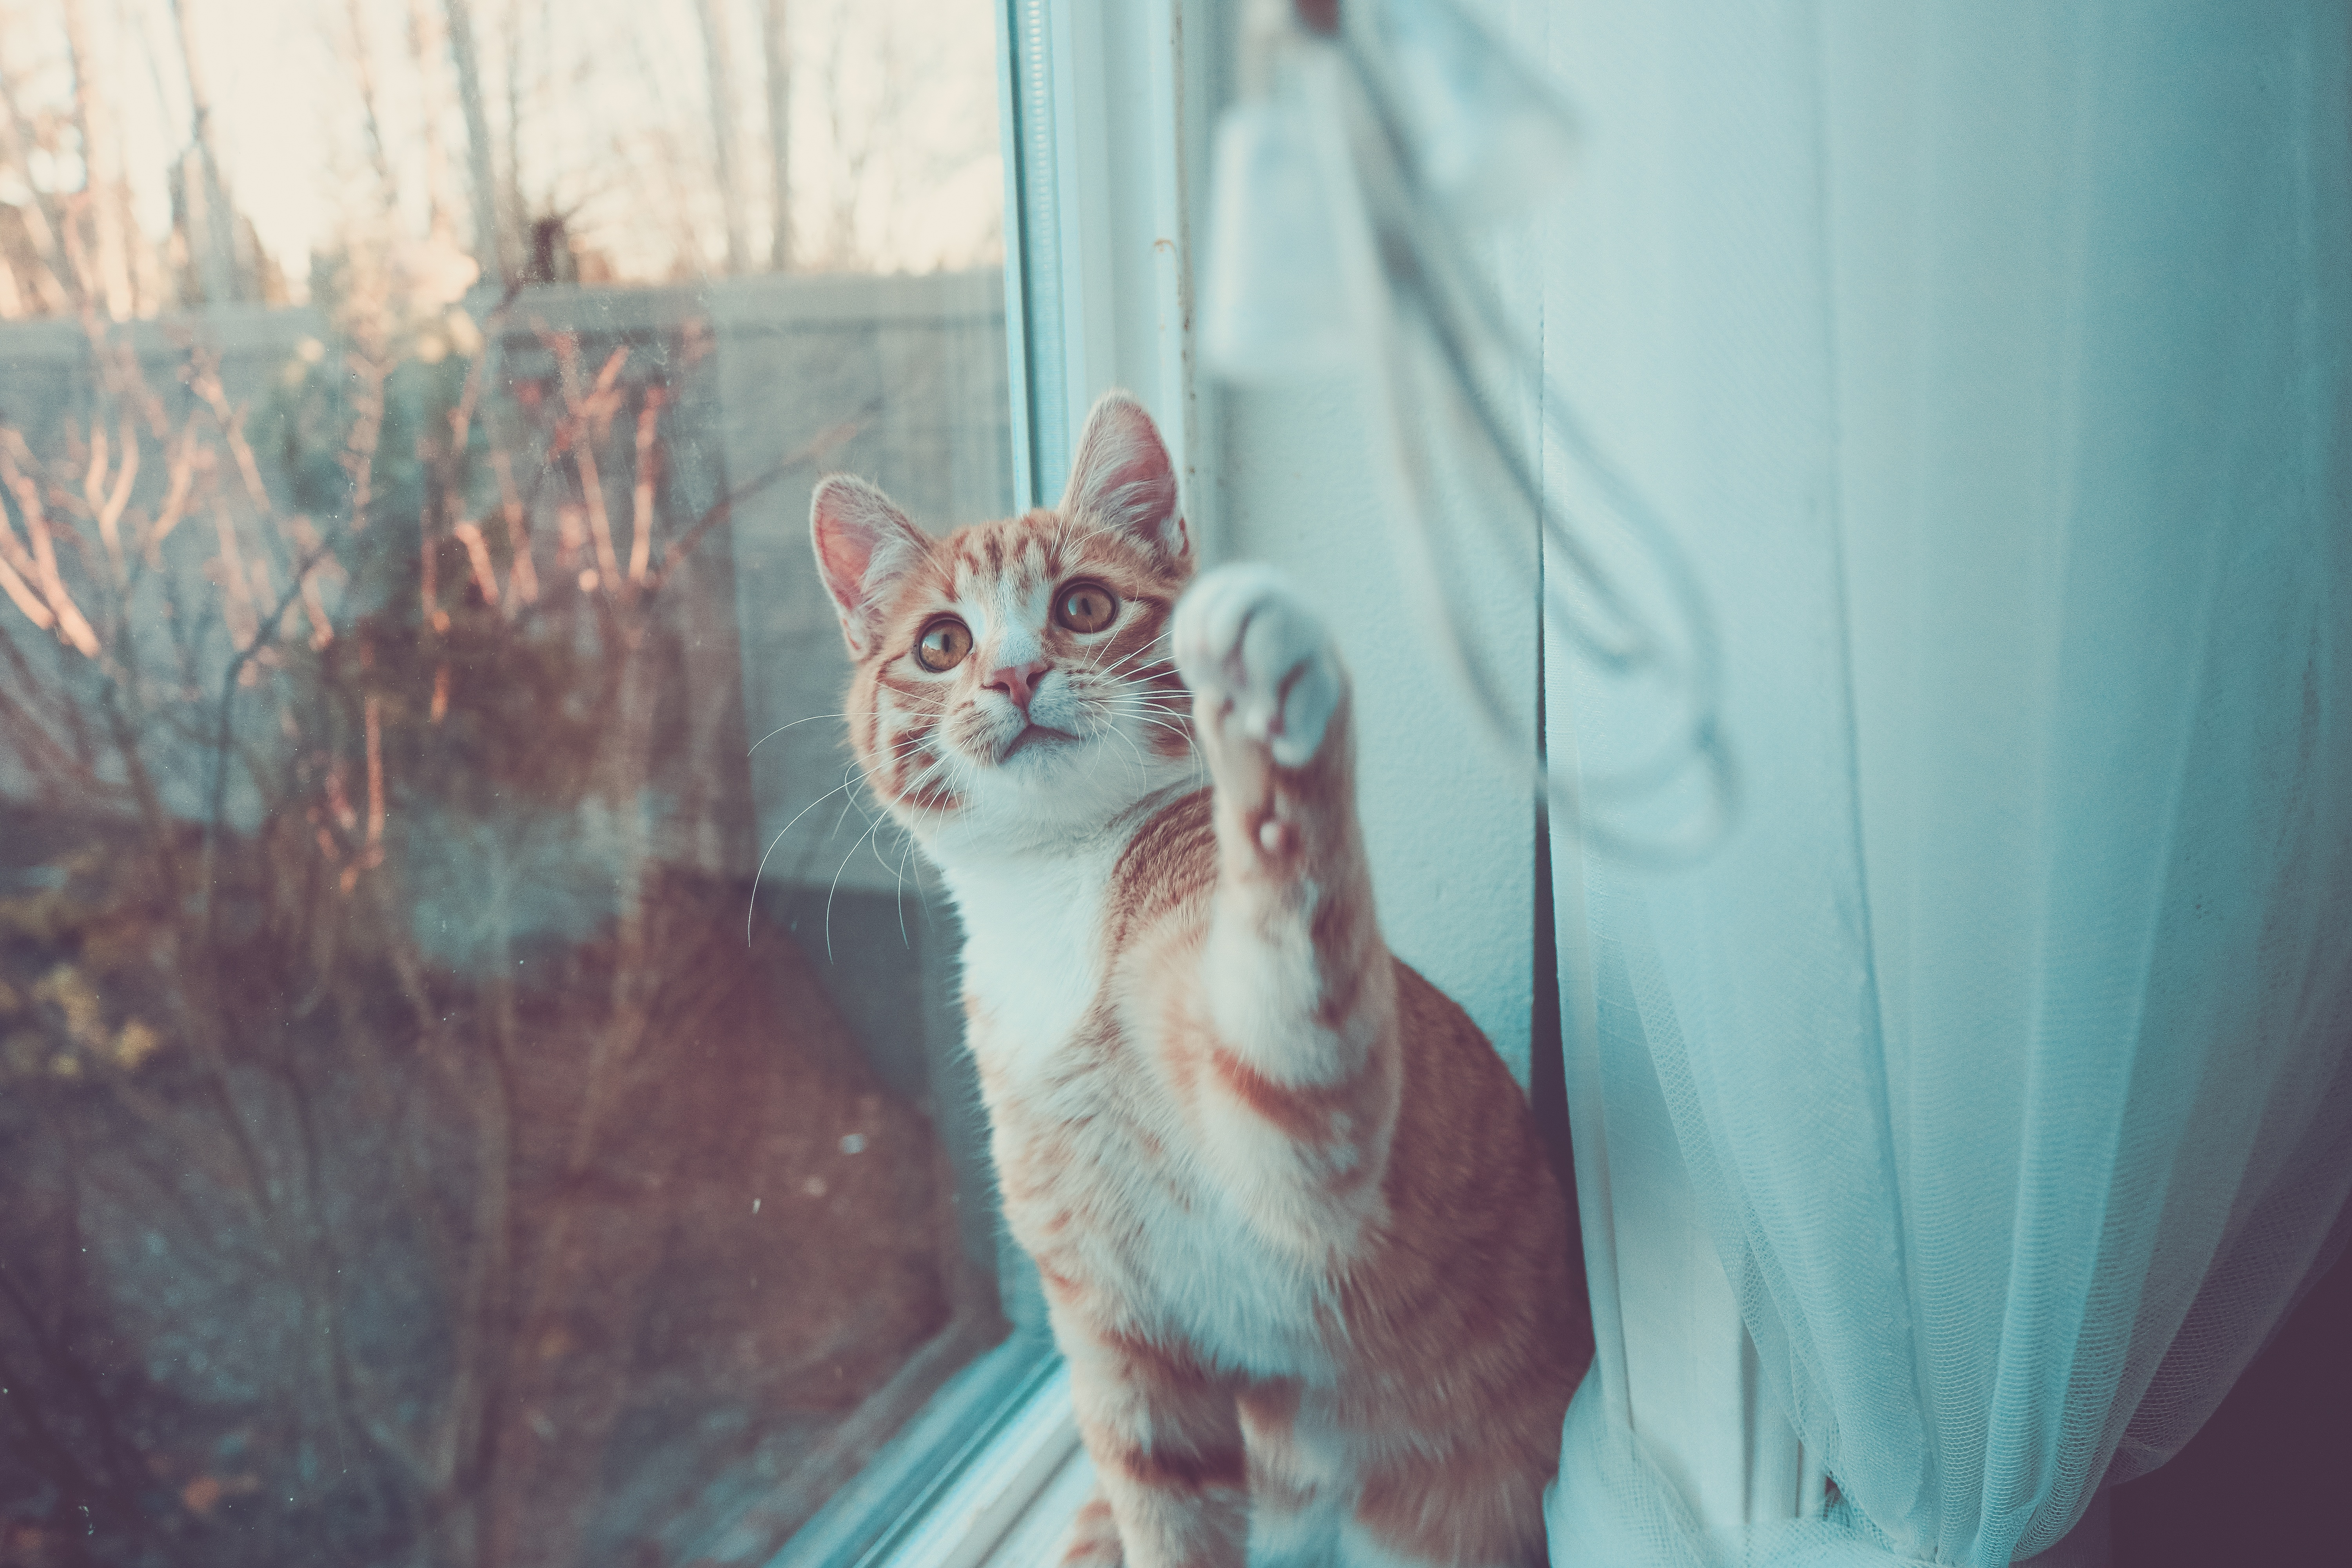 Orange white-spotted tabby cat playing with the blinds or curtains